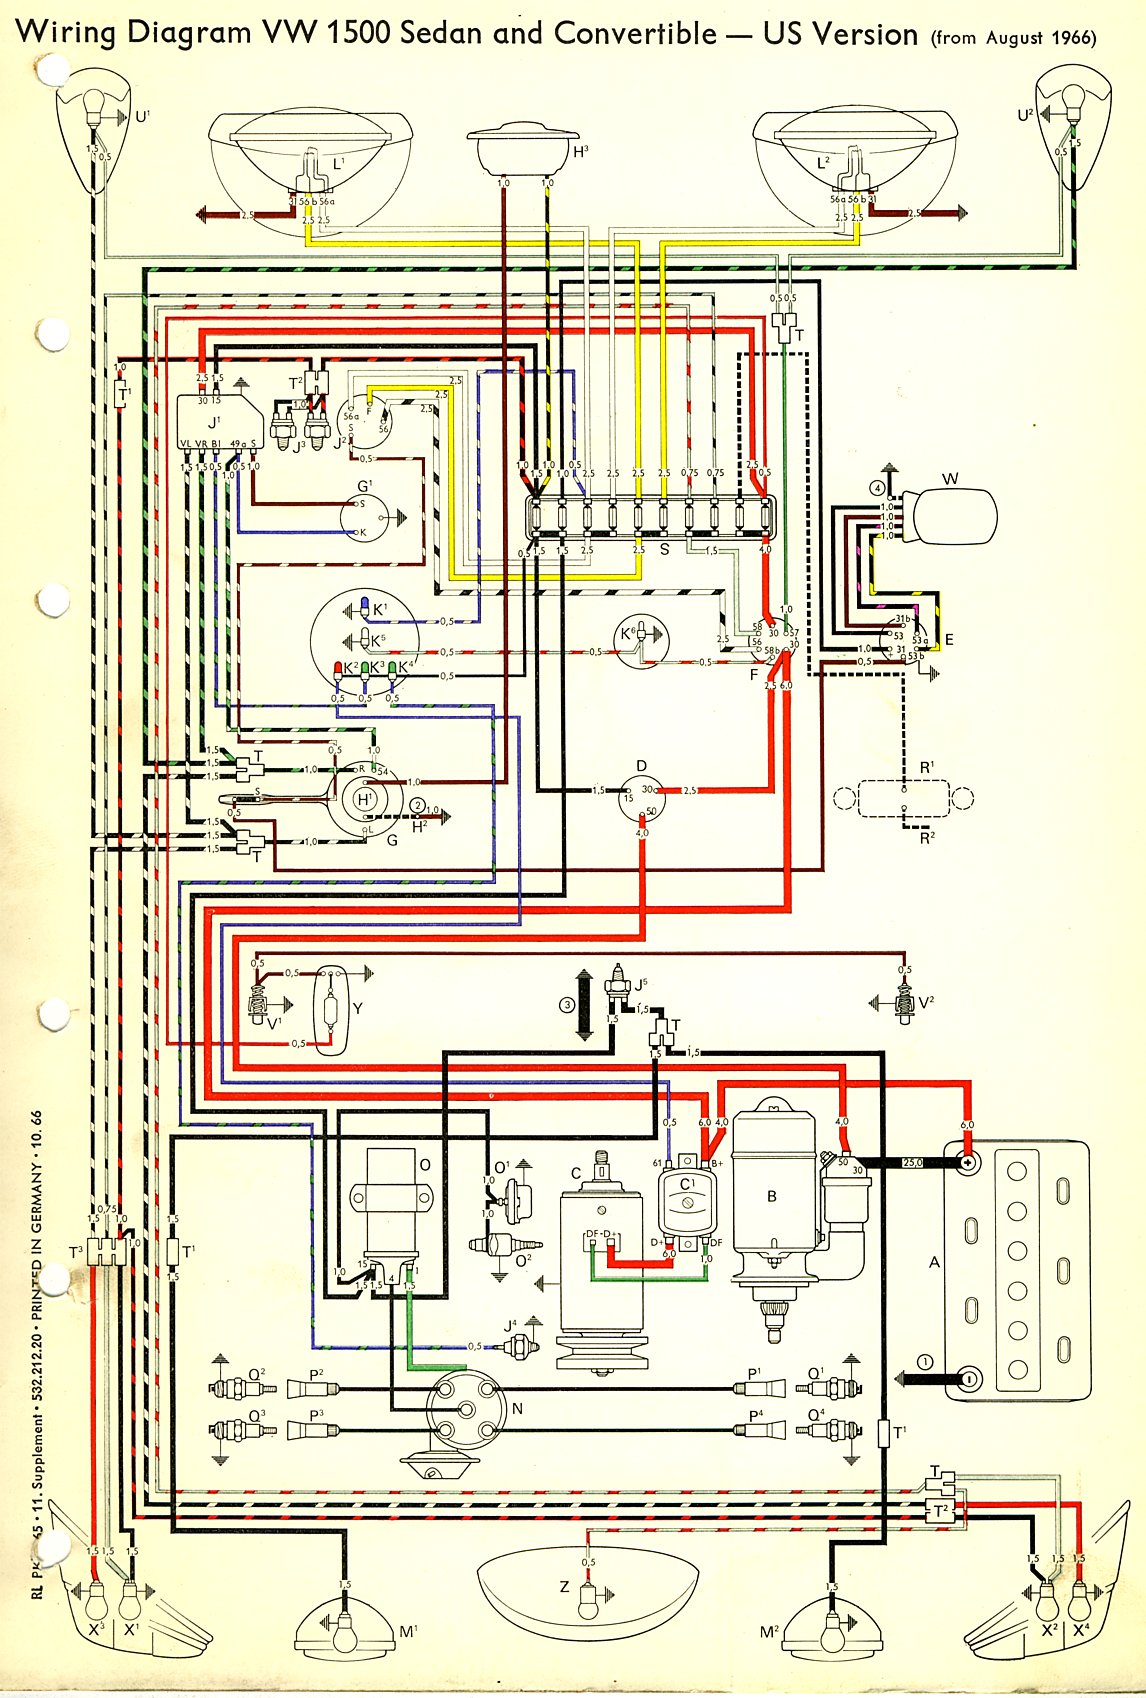 bug_67_USA thesamba com type 1 wiring diagrams 1973 vw beetle wiring diagram at readyjetset.co